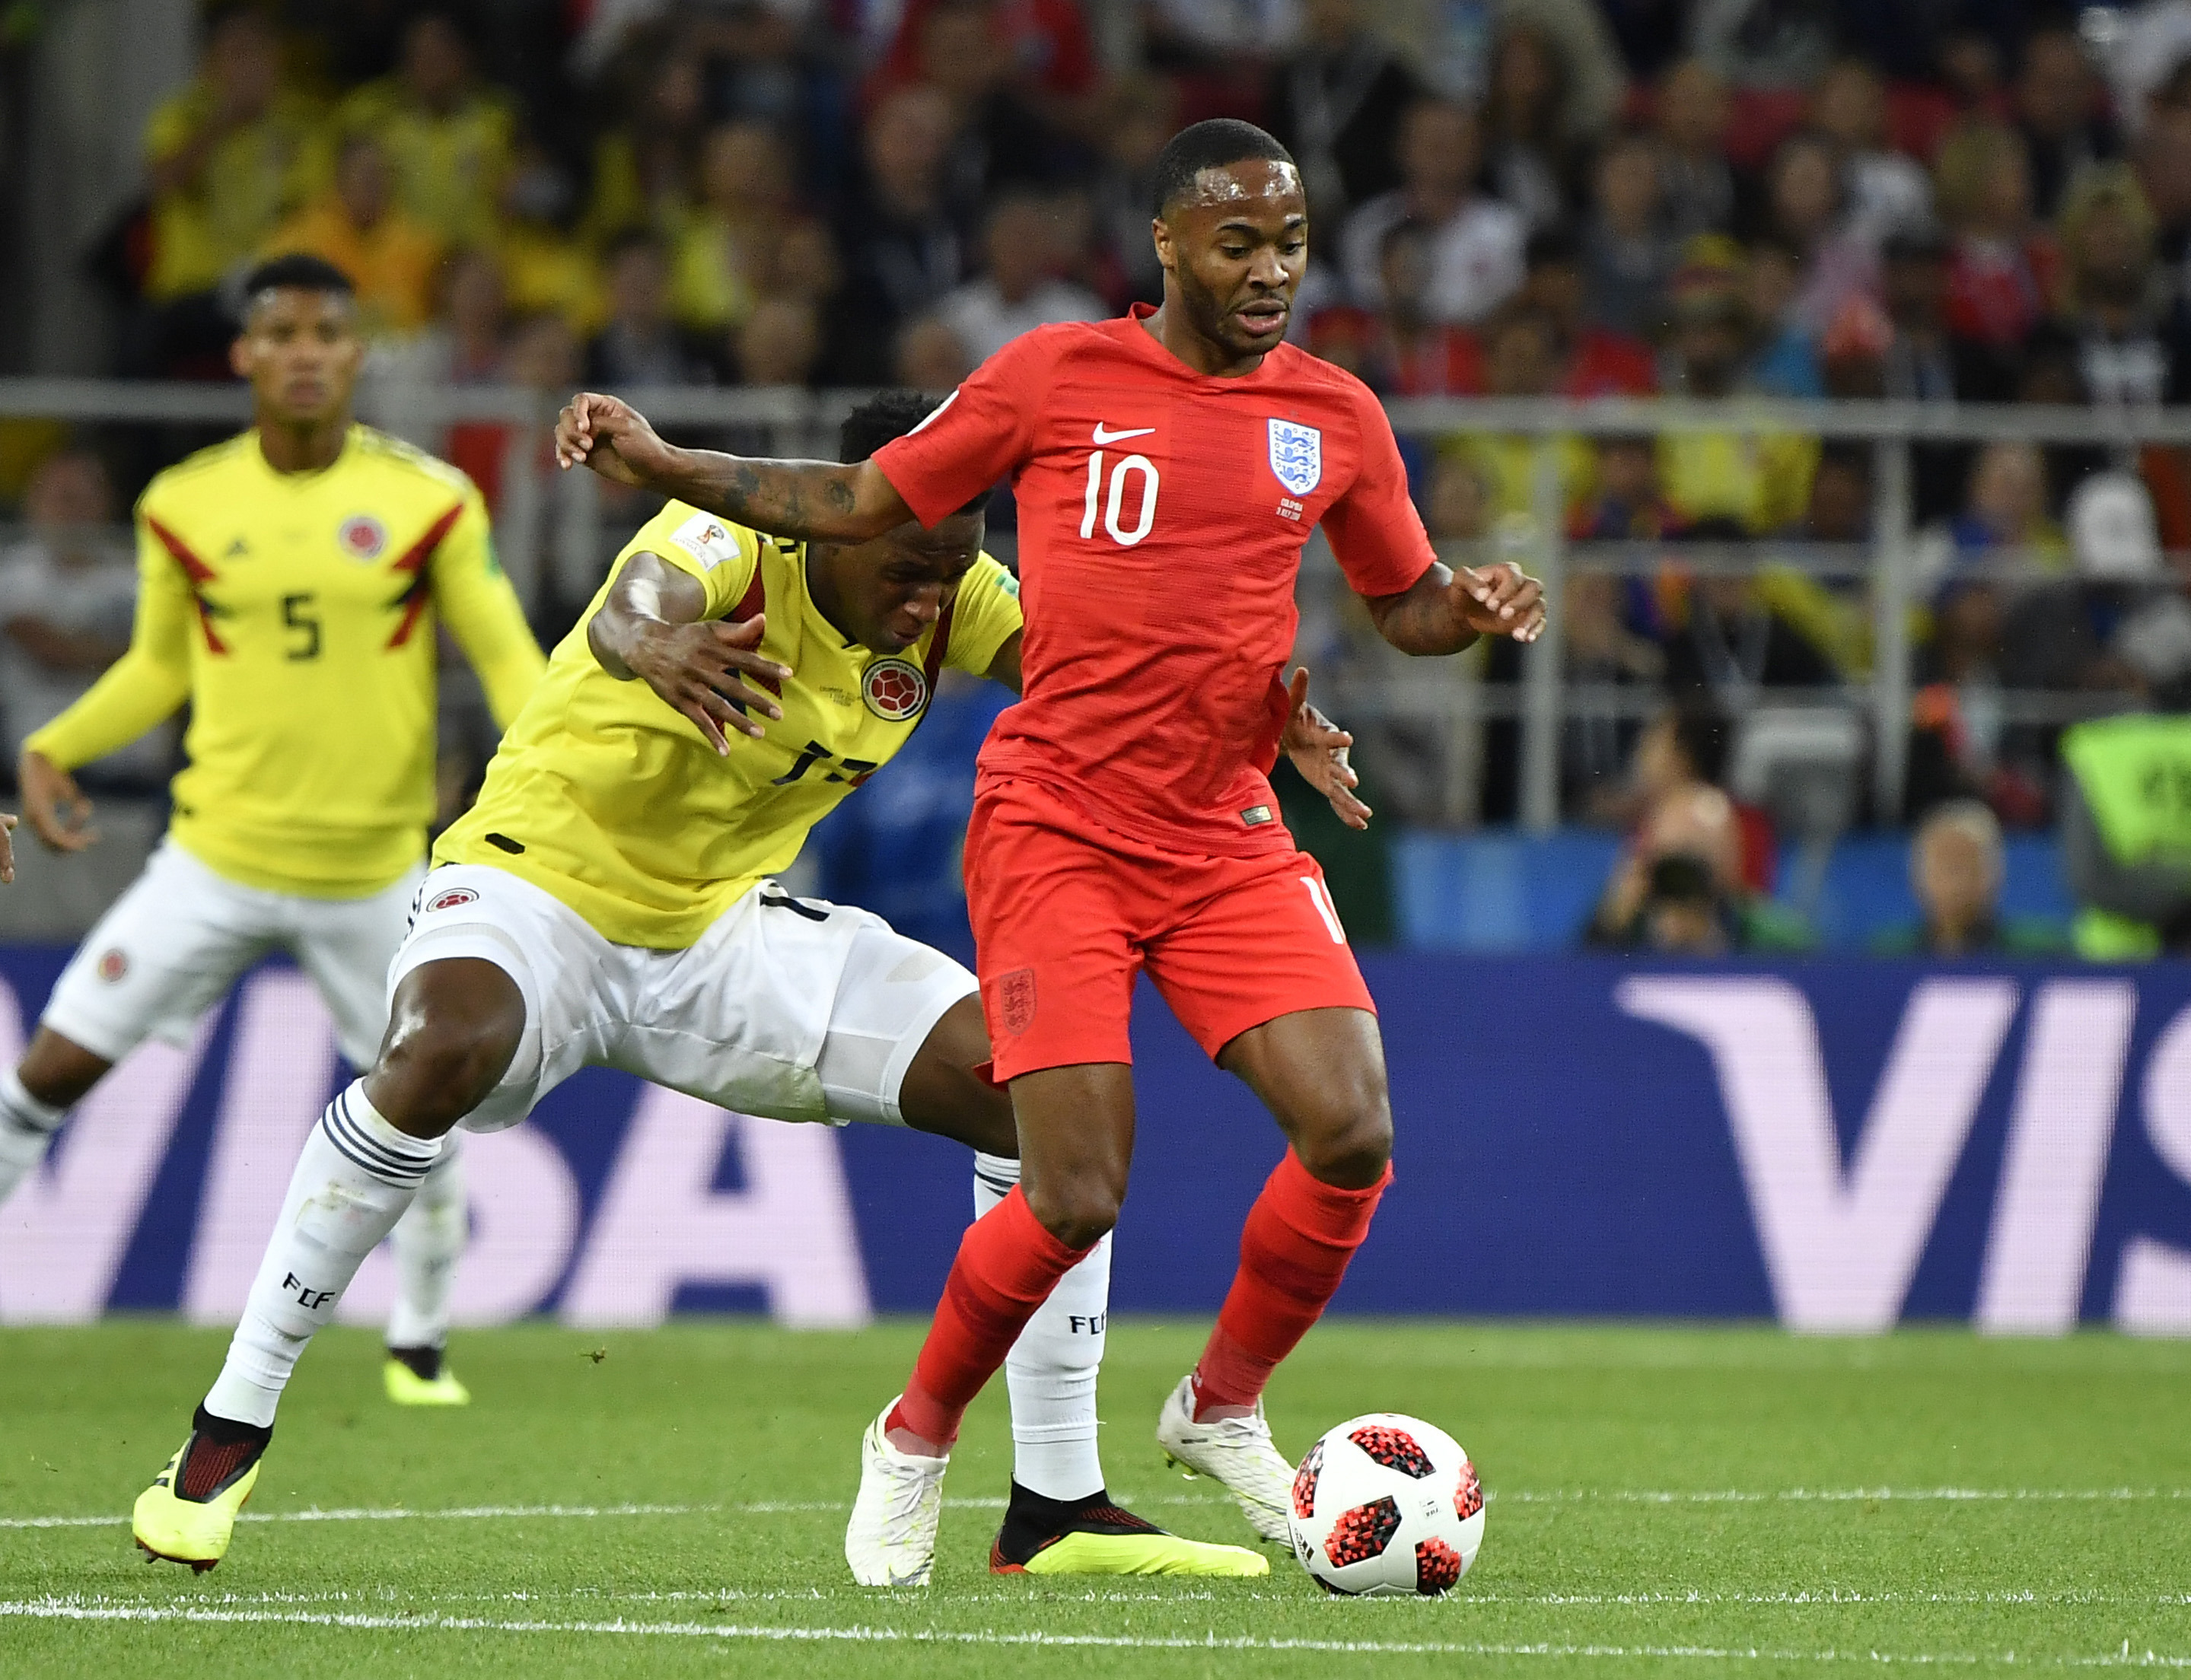 Colombian Official Caught Trying To Shoulder Sterling As He Left Pitch PA 37358338